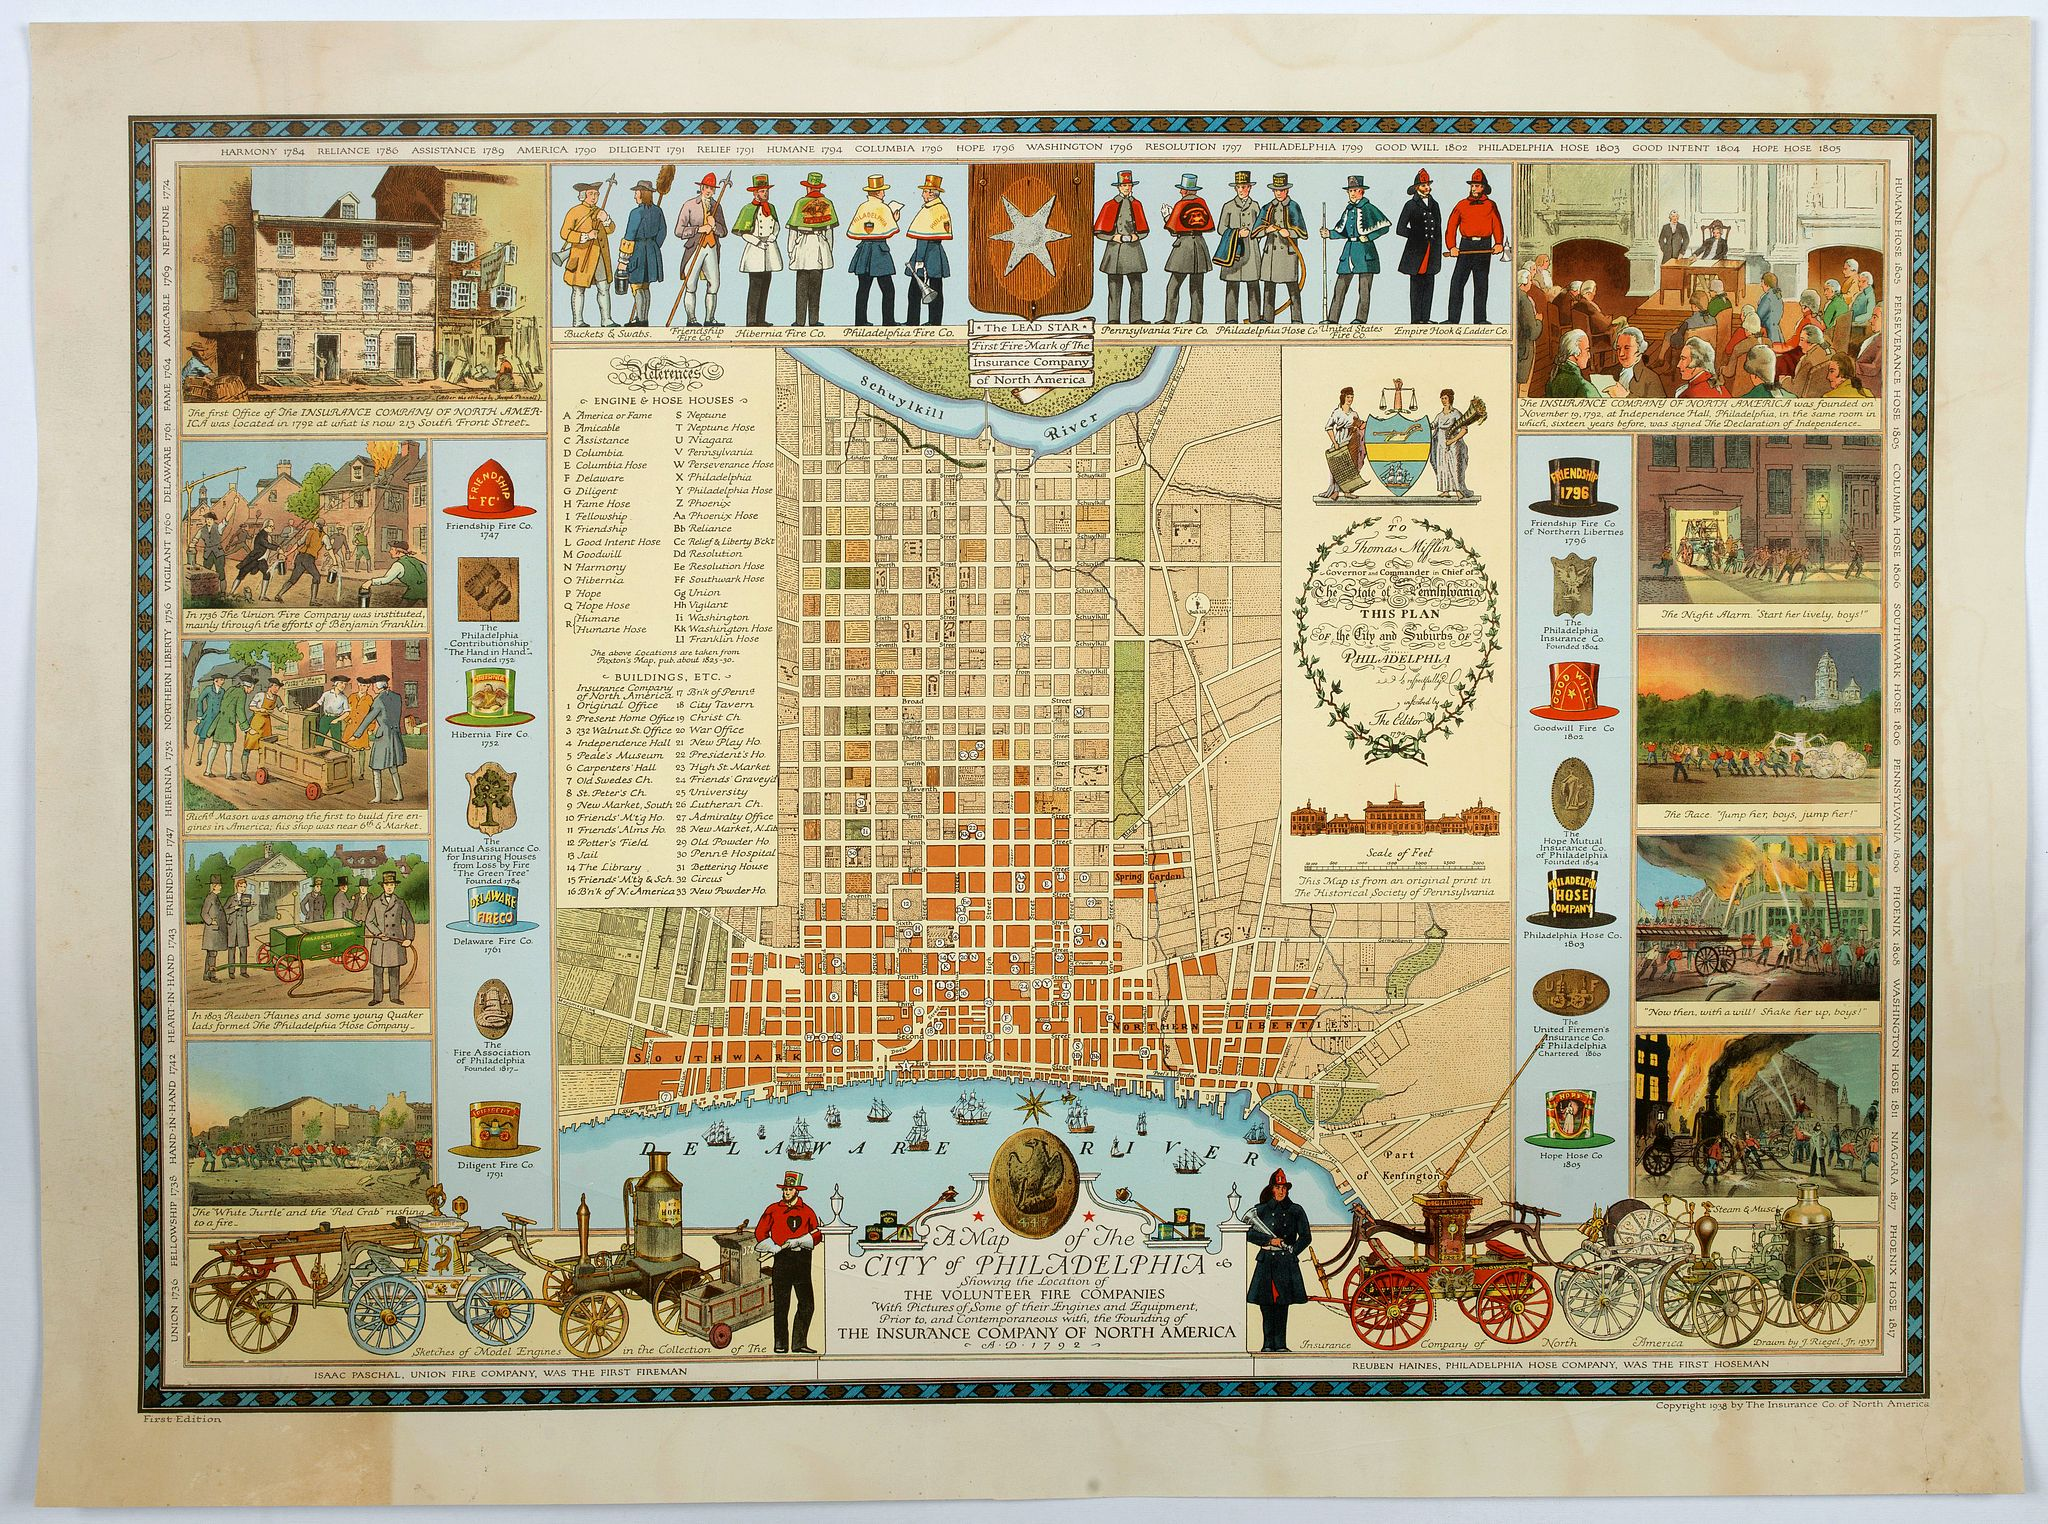 THE INSURANCE COMPANY OF NORTH AMERICA. - A Map of the City of Philadelphia, showing the Location of the Volunteer Fire Companies. . .